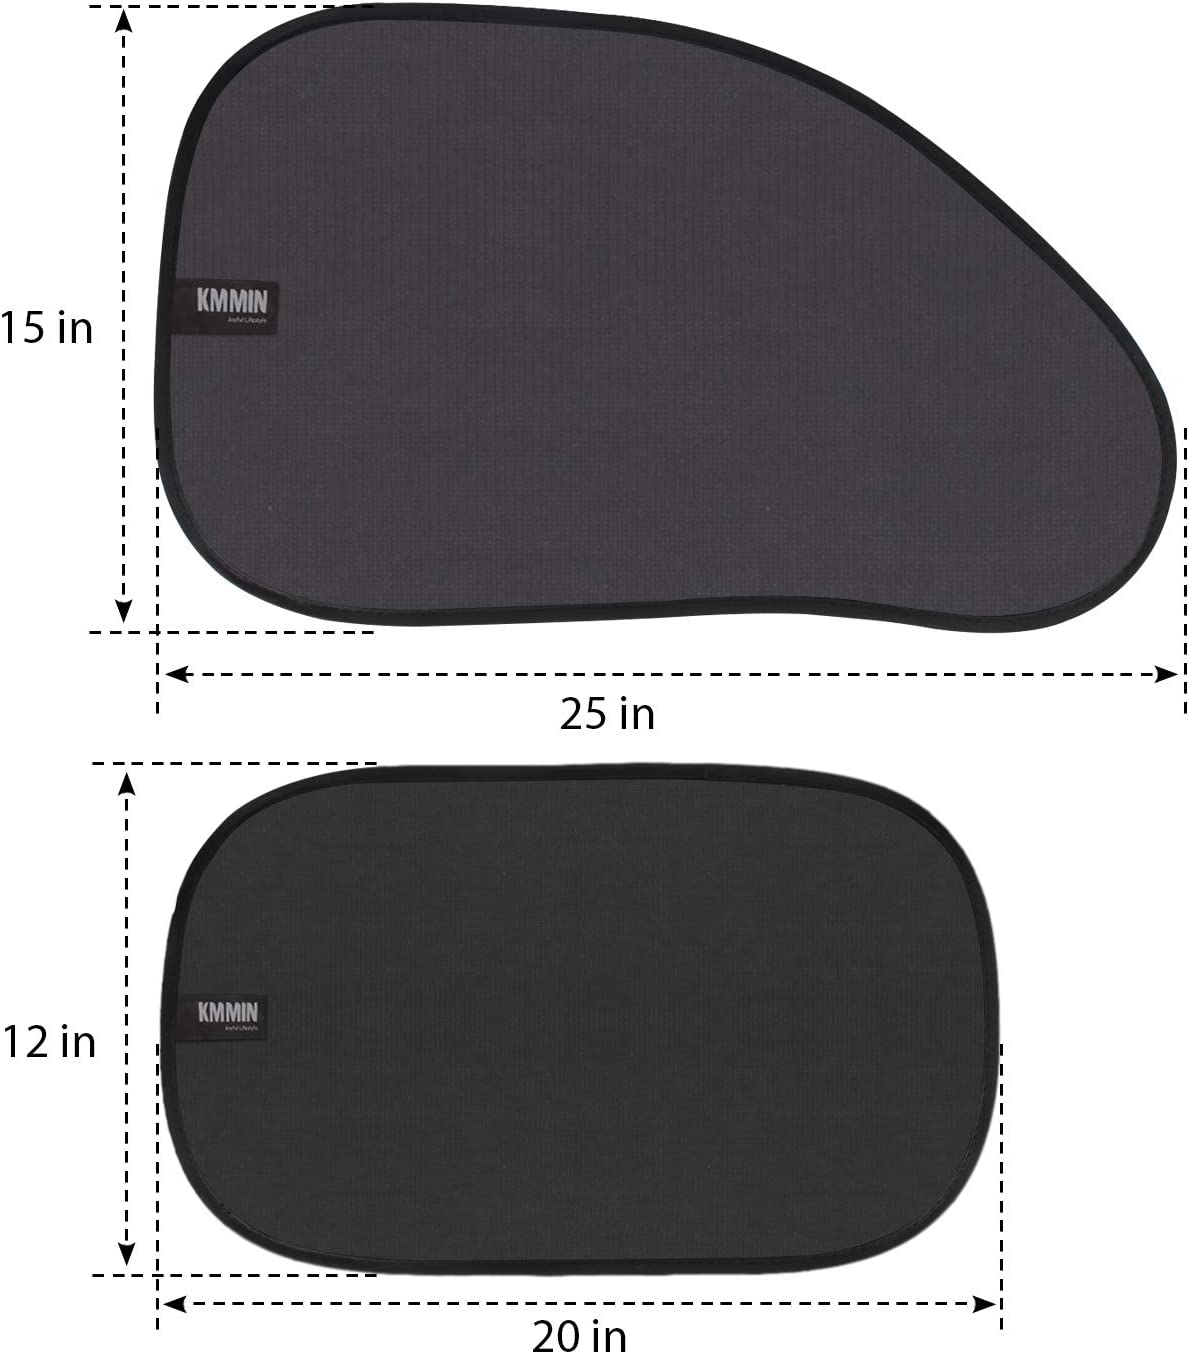 4 Pack KMMIN Car Window Shade Auto Sunshade for Blocking UV Ray and Protecting Kids Pets with Easy Installation and Good Cooling Match 25 X 15 /& 20 X 12 inches